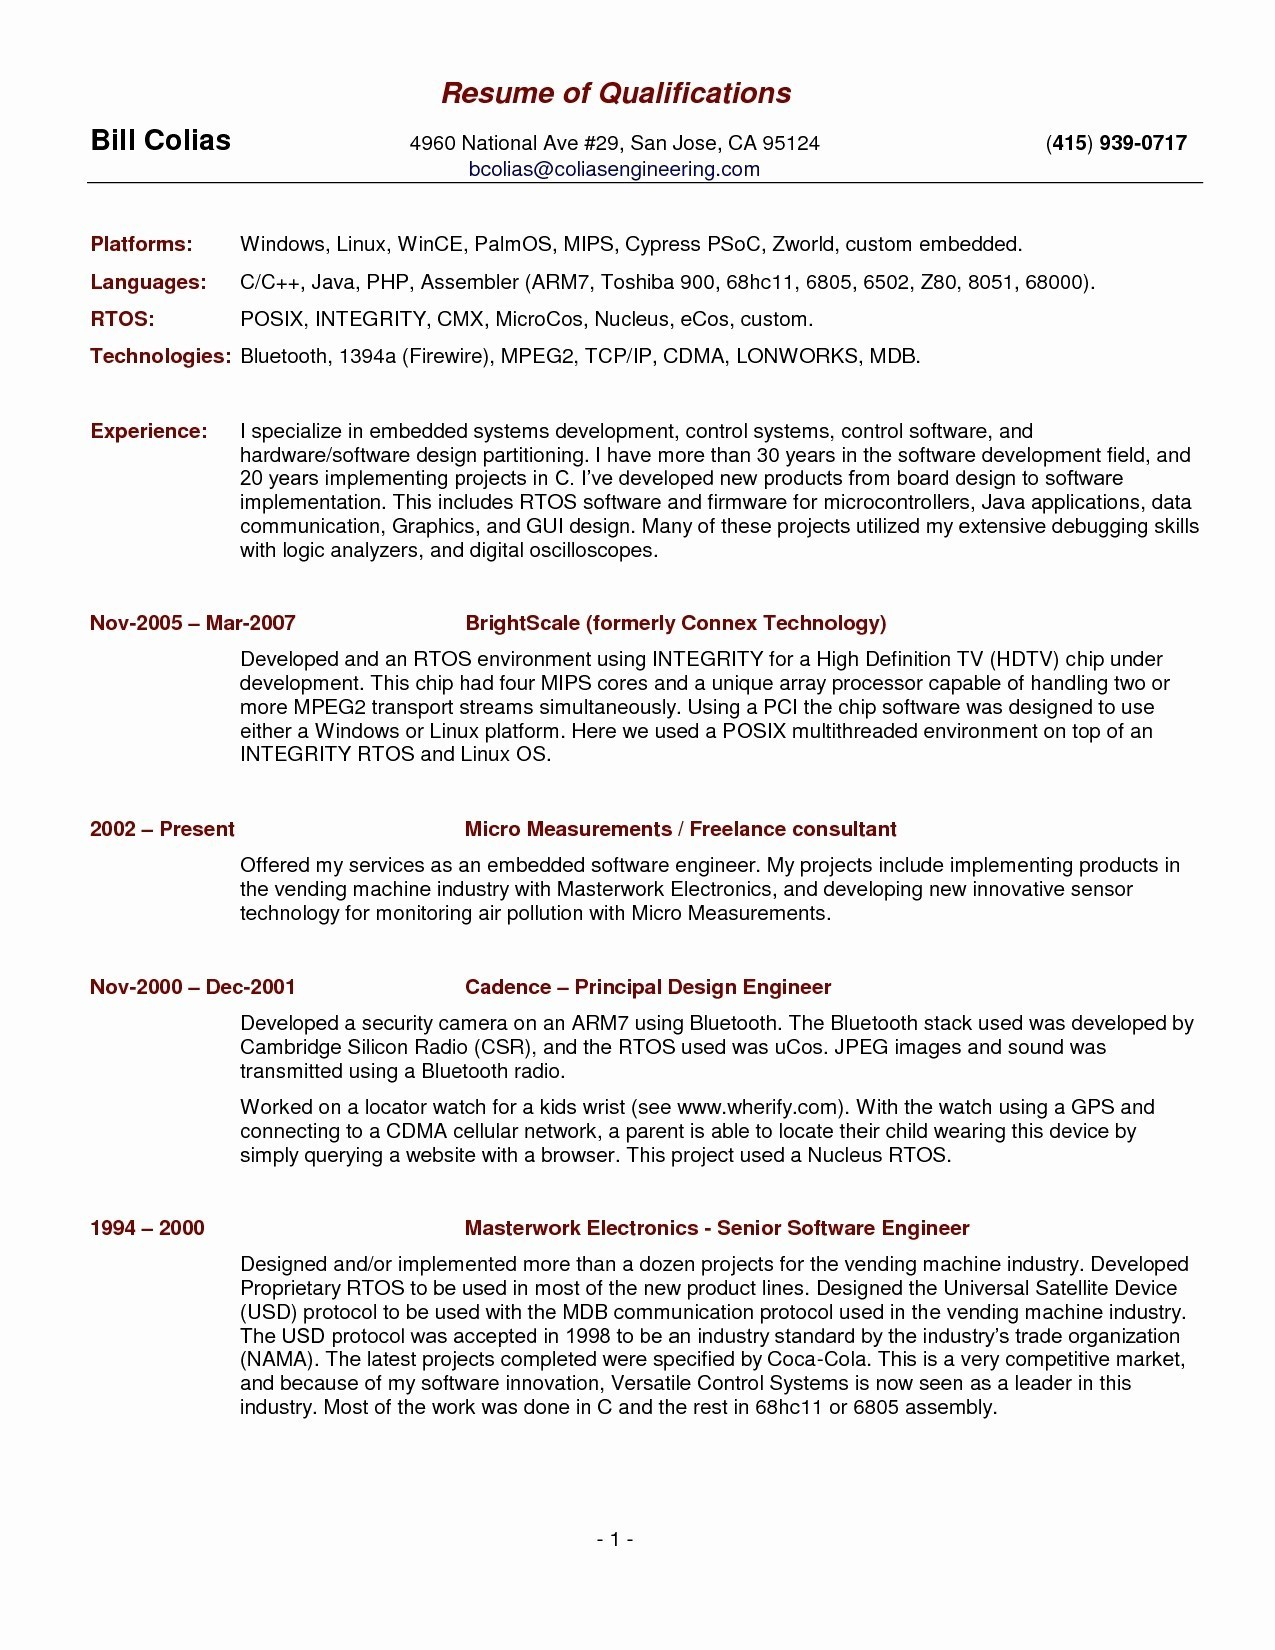 Cio Resume Template - Free Sample Resume Templates Elegant Elegant Pr Resume Template